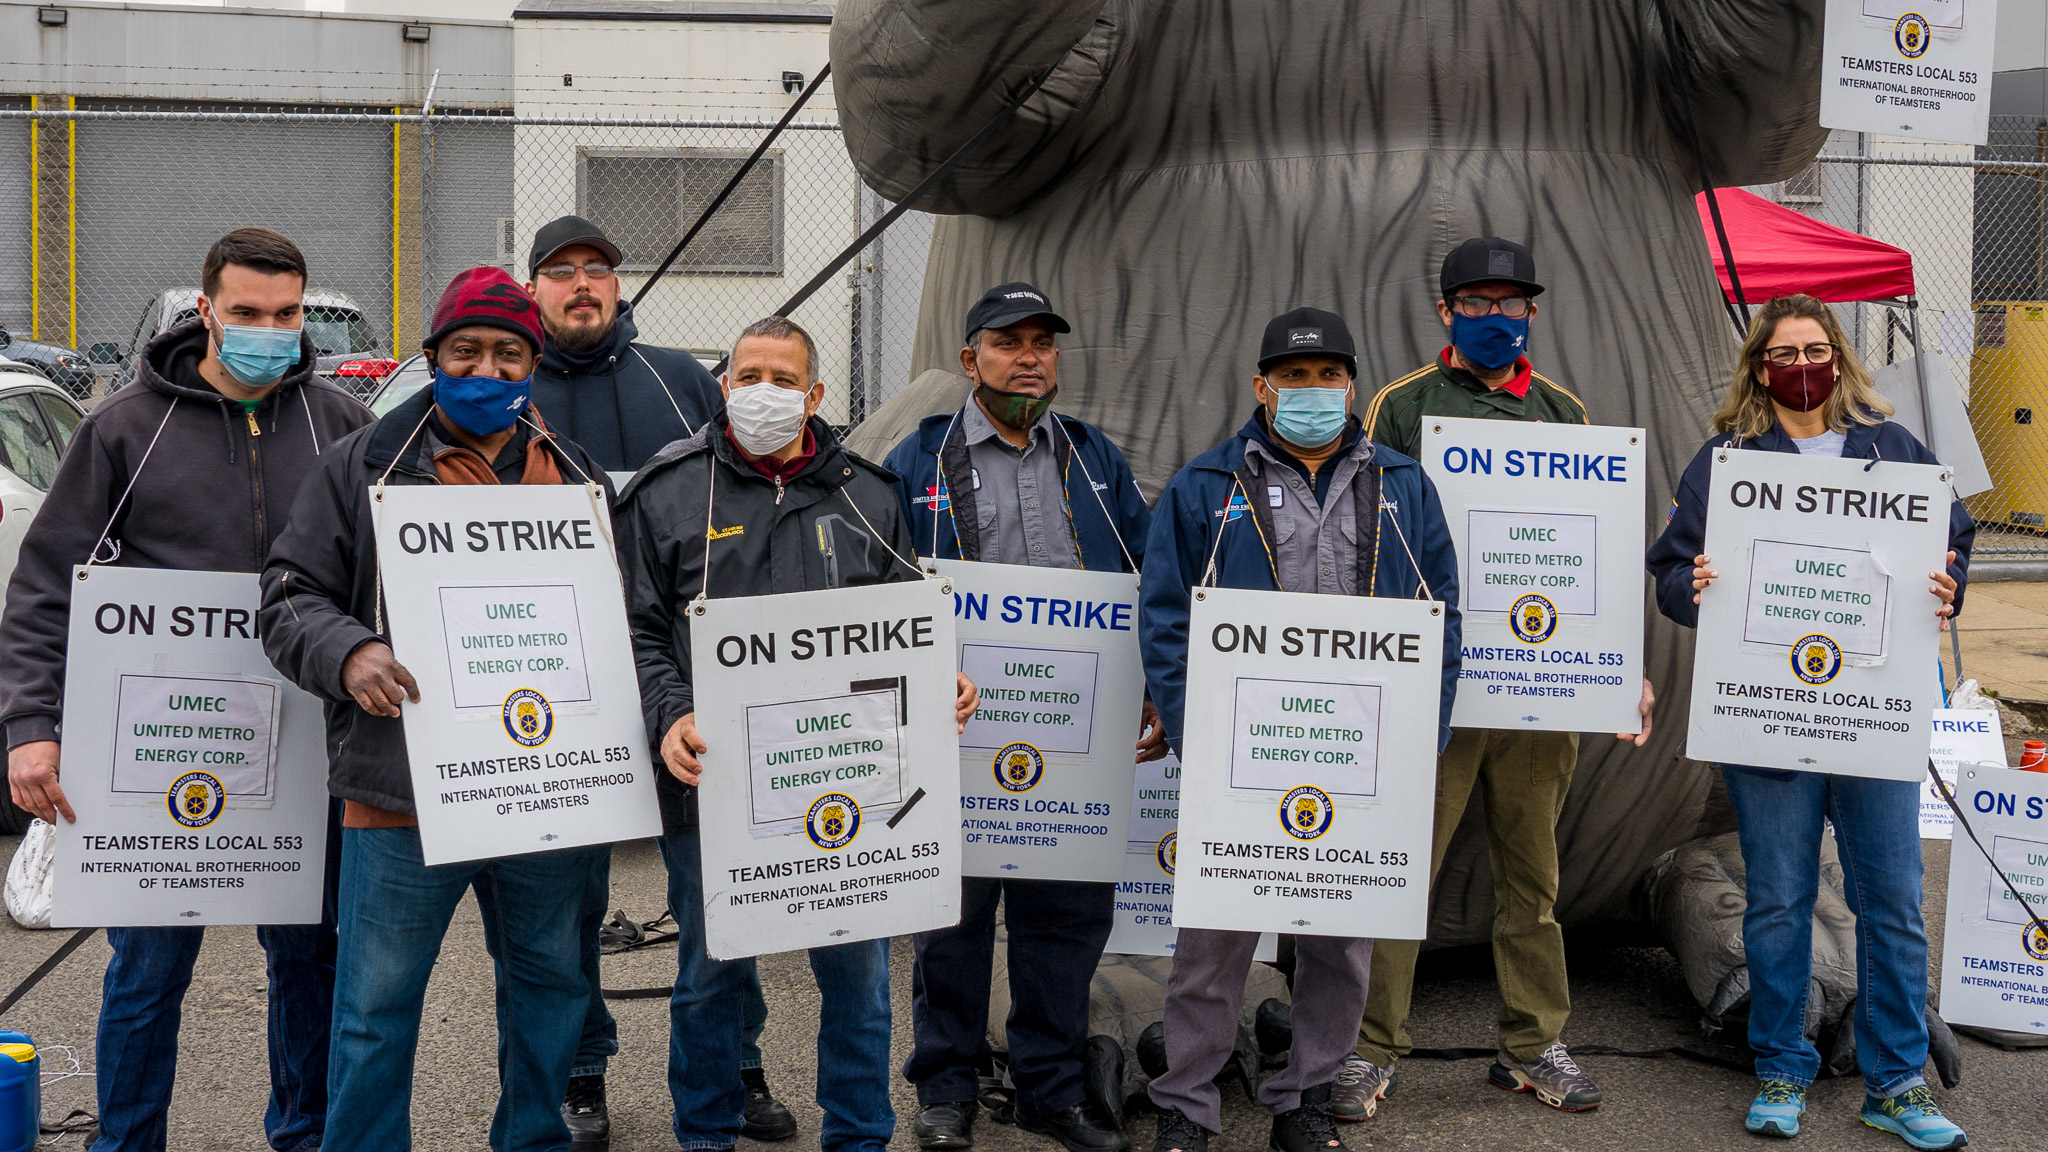 The company already sent letters to some of the workers on strike stating that they have been permanently replaced.